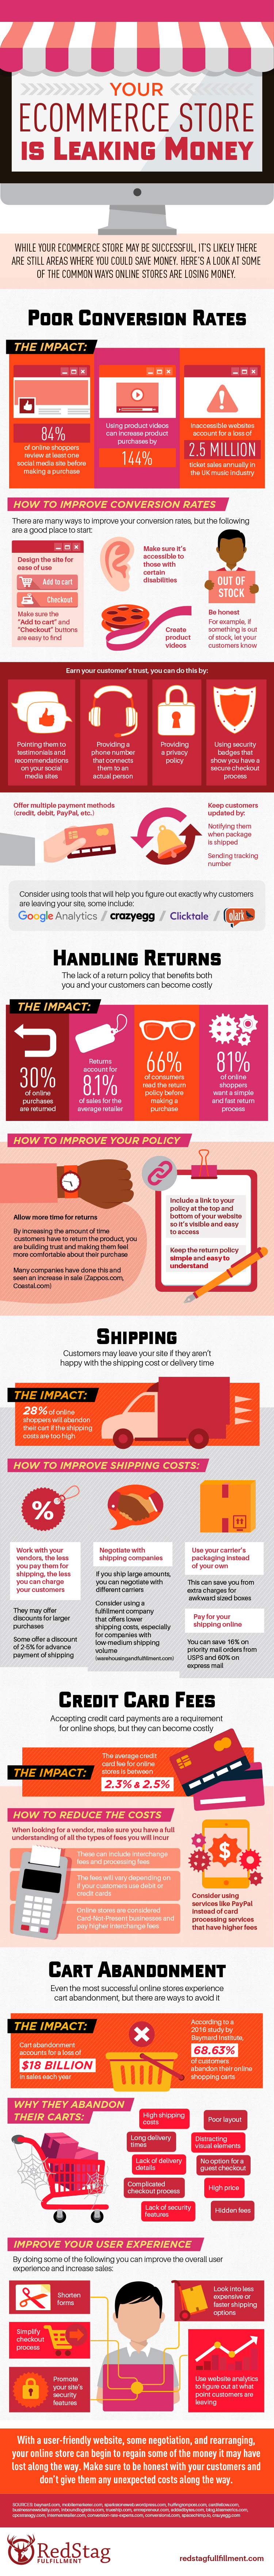 Your Online Shop Leaking Money? Here's How to Waterproof It. [Infographic]